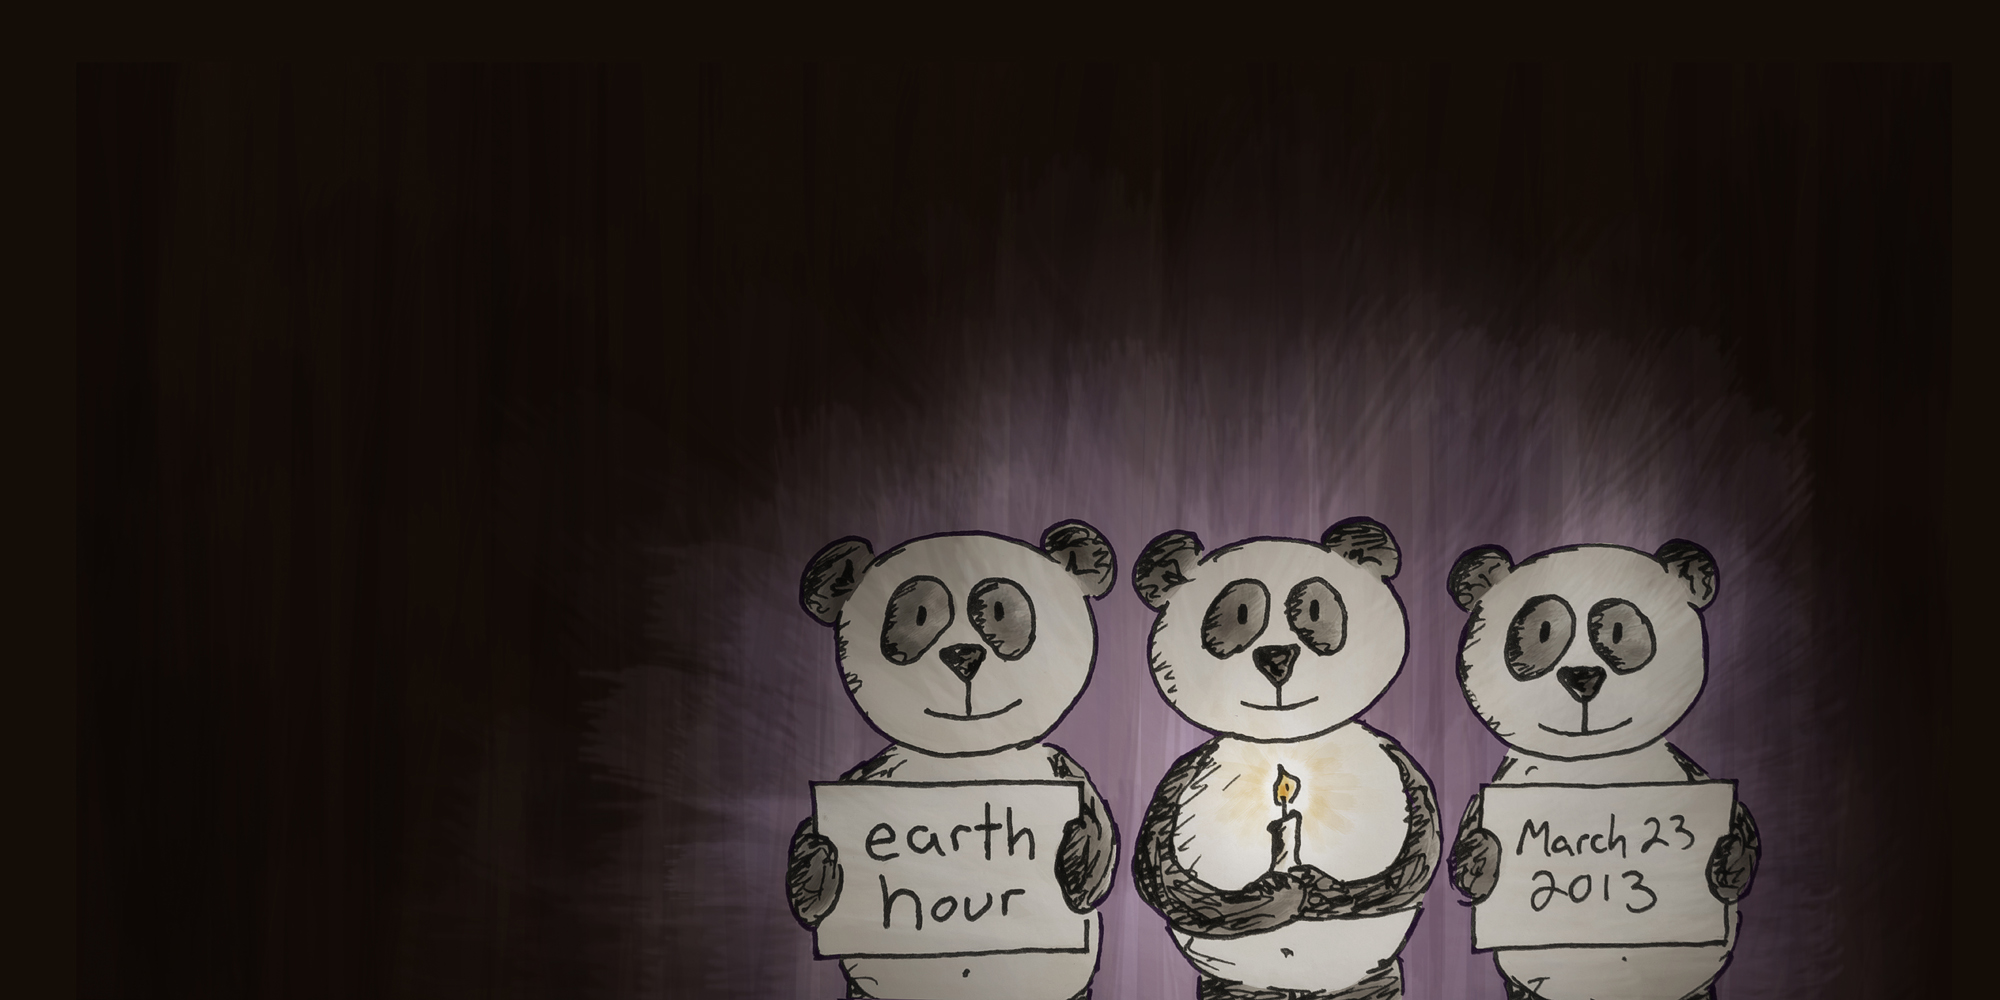 Earth Hour, Hong Kong - March 23, 2013. WWF. brought to you by the Land of Le Beef, by Darren Lebeuf.